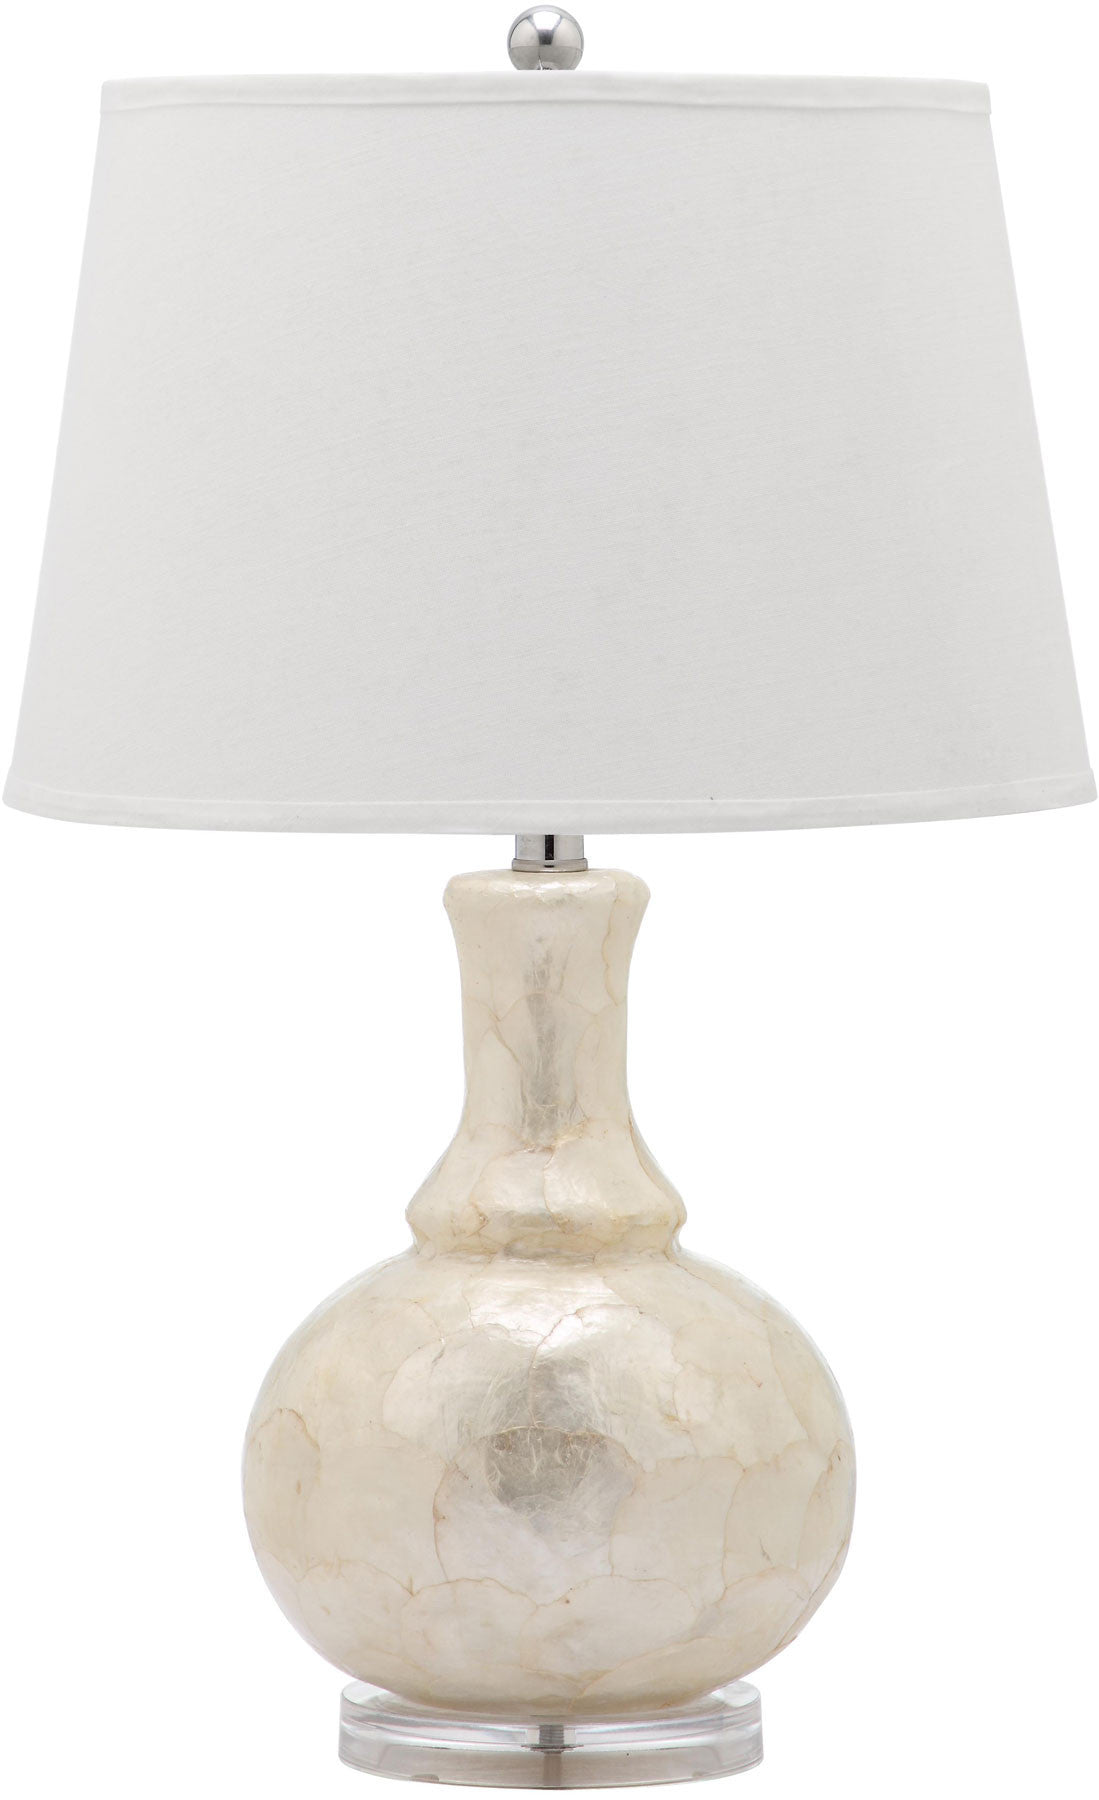 Shelley Gourd Table Lamp In Capiz Shell With White Shade (Set Of 2)  ...